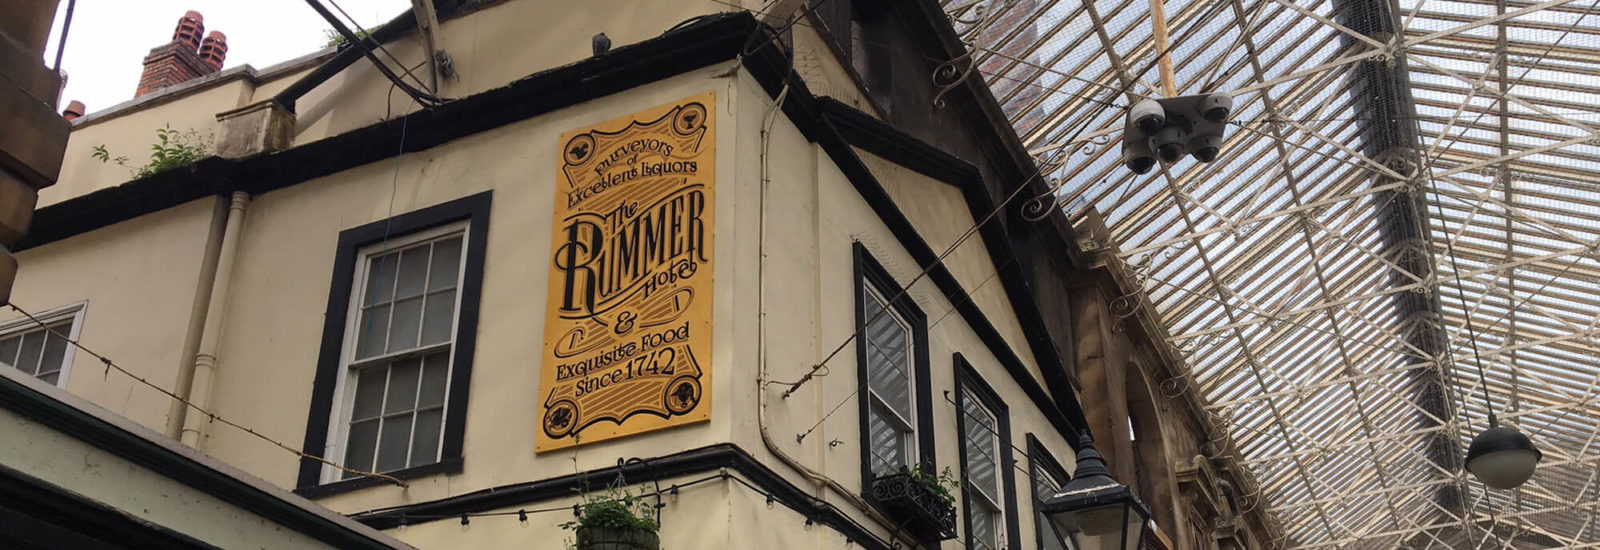 Image of The Rummer